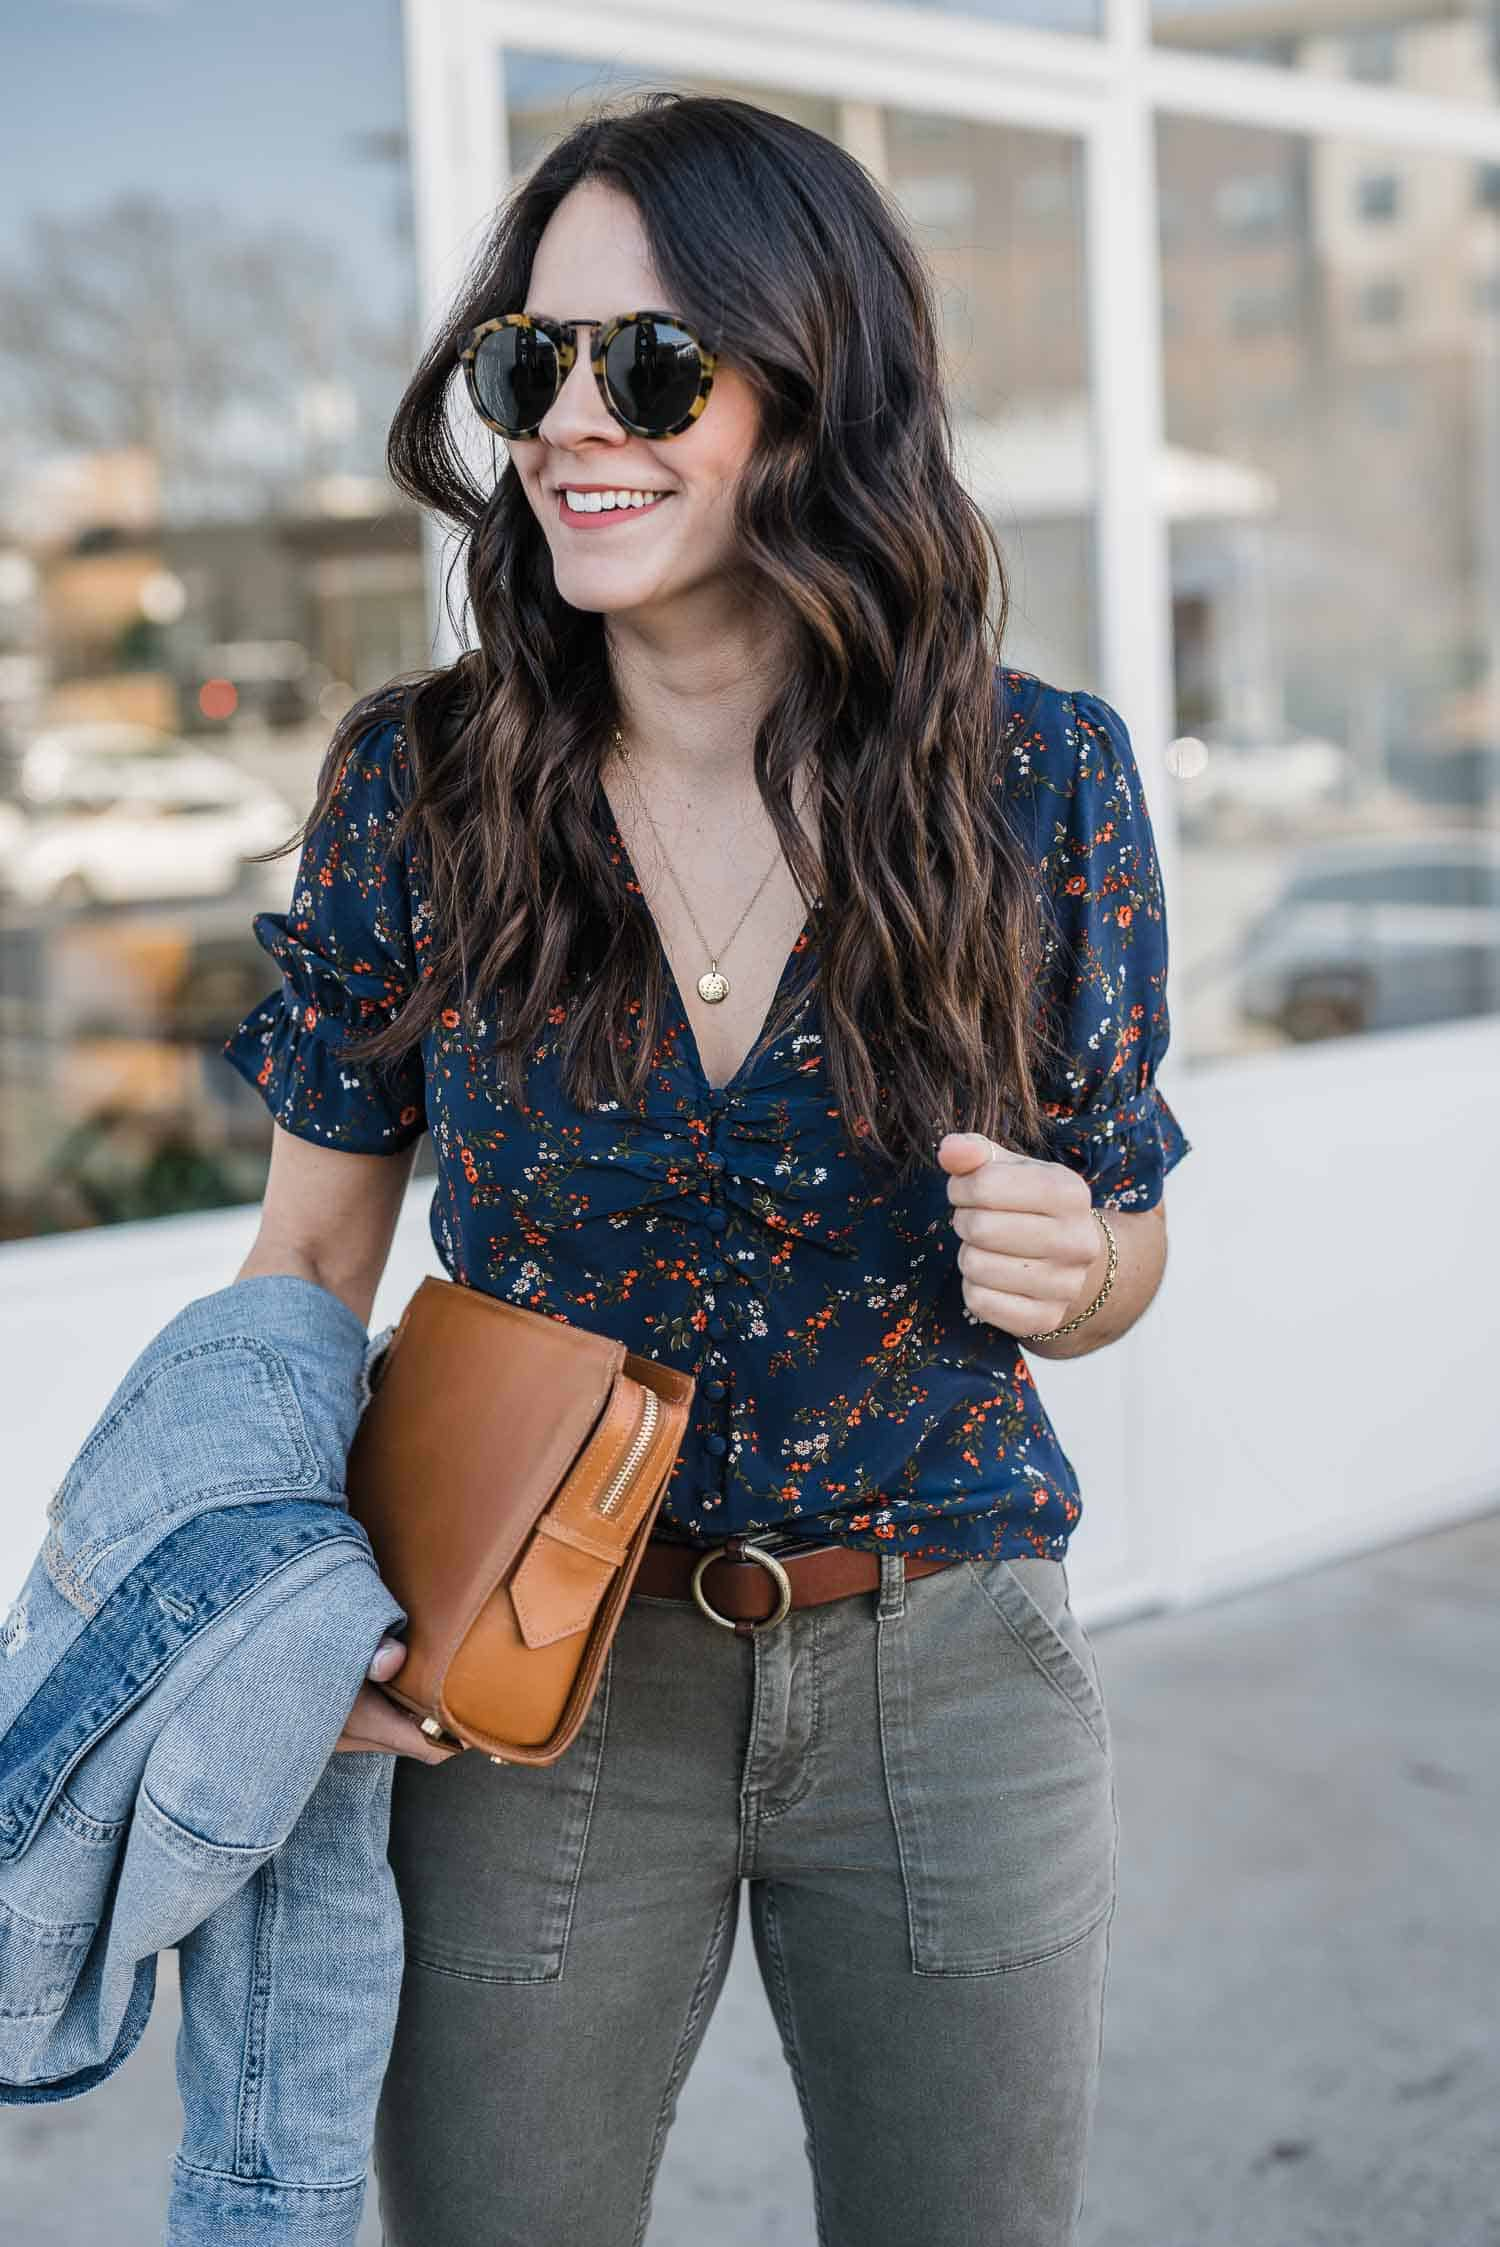 Jessica is wearing a ditsy floral print Madewell blouse